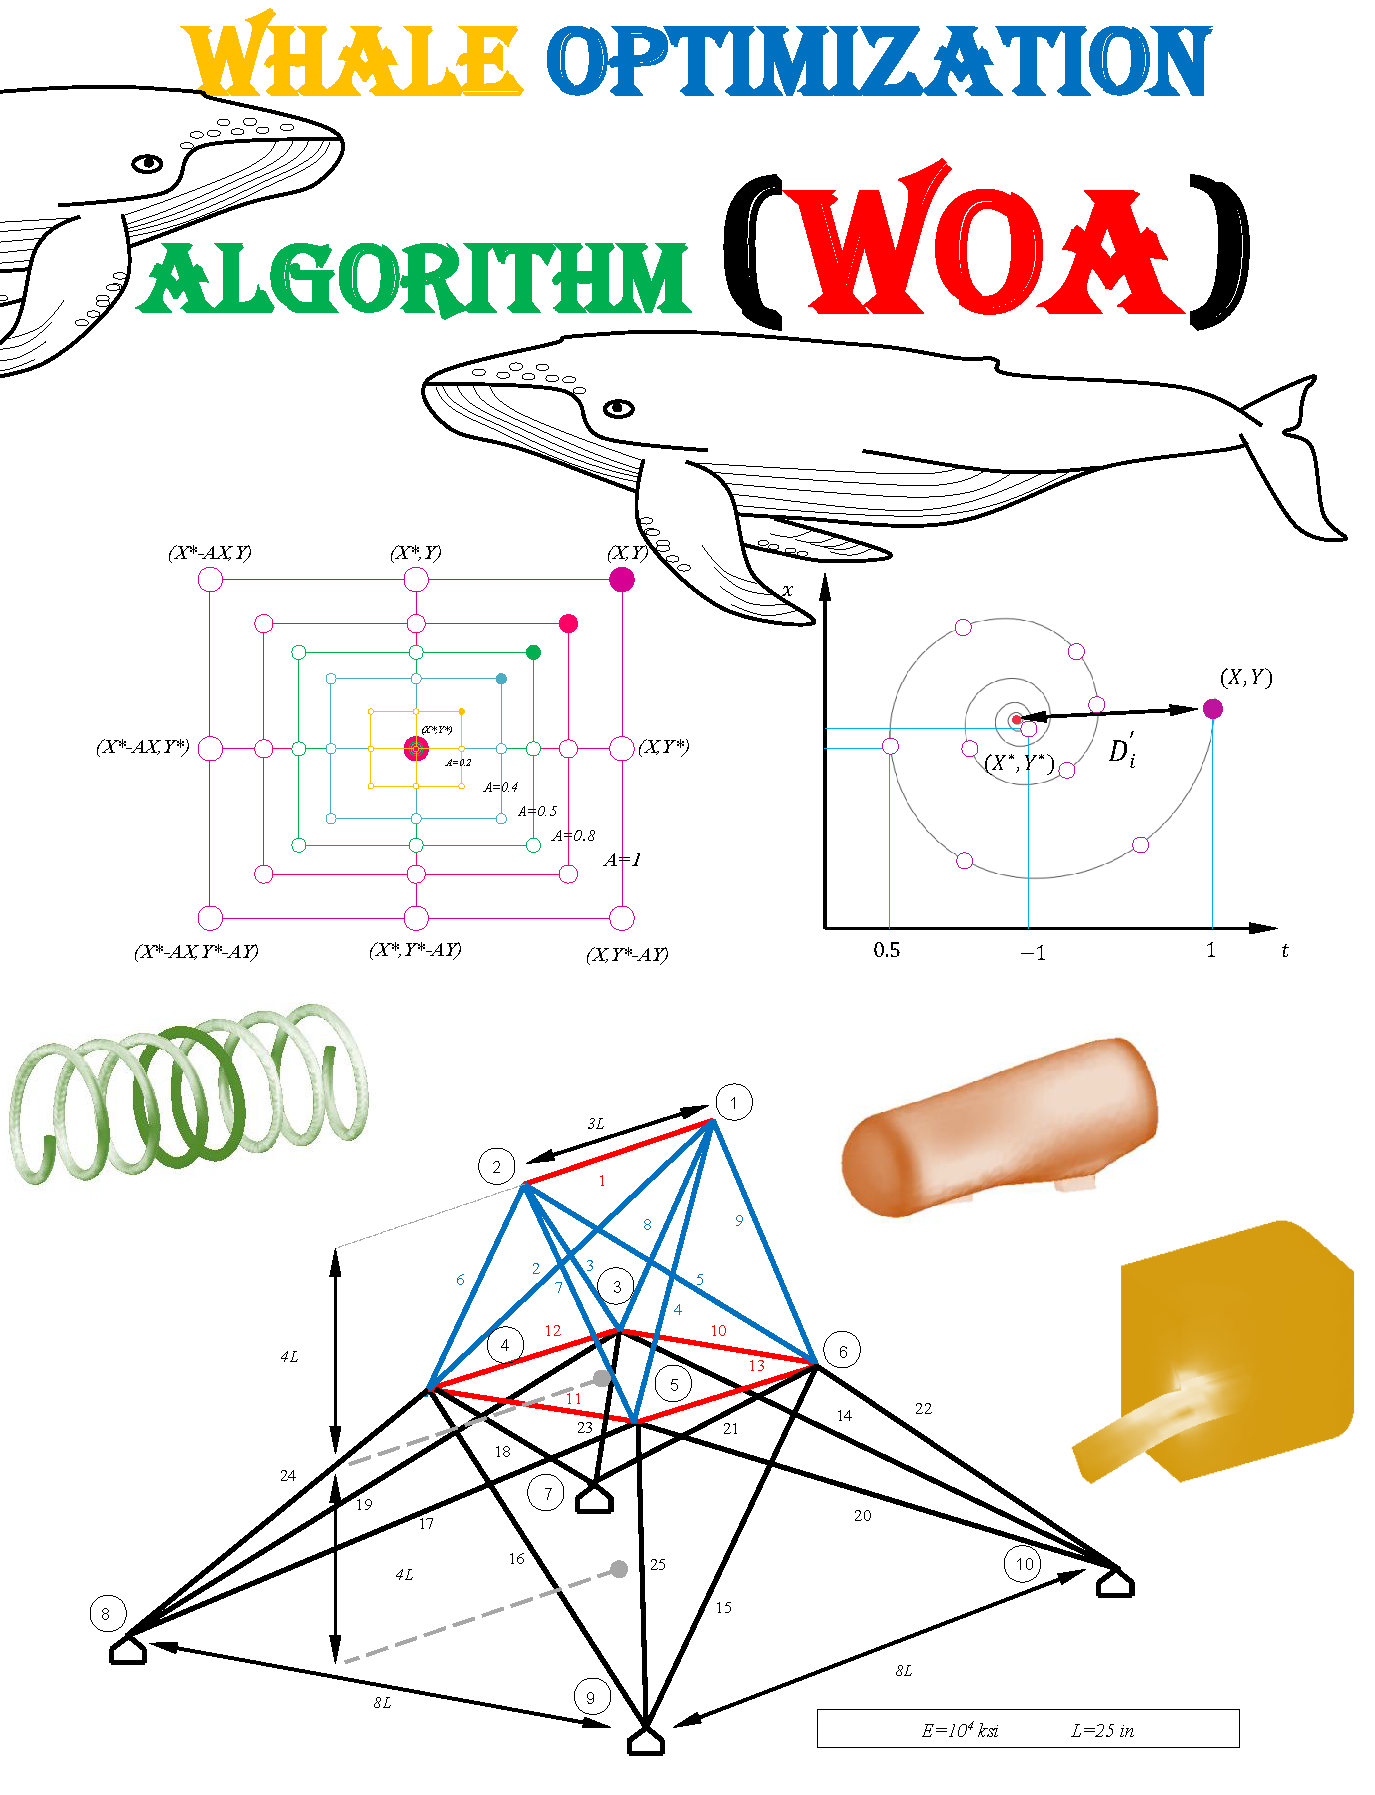 The Whale Optimization Algorithm - File Exchange - MATLAB Central